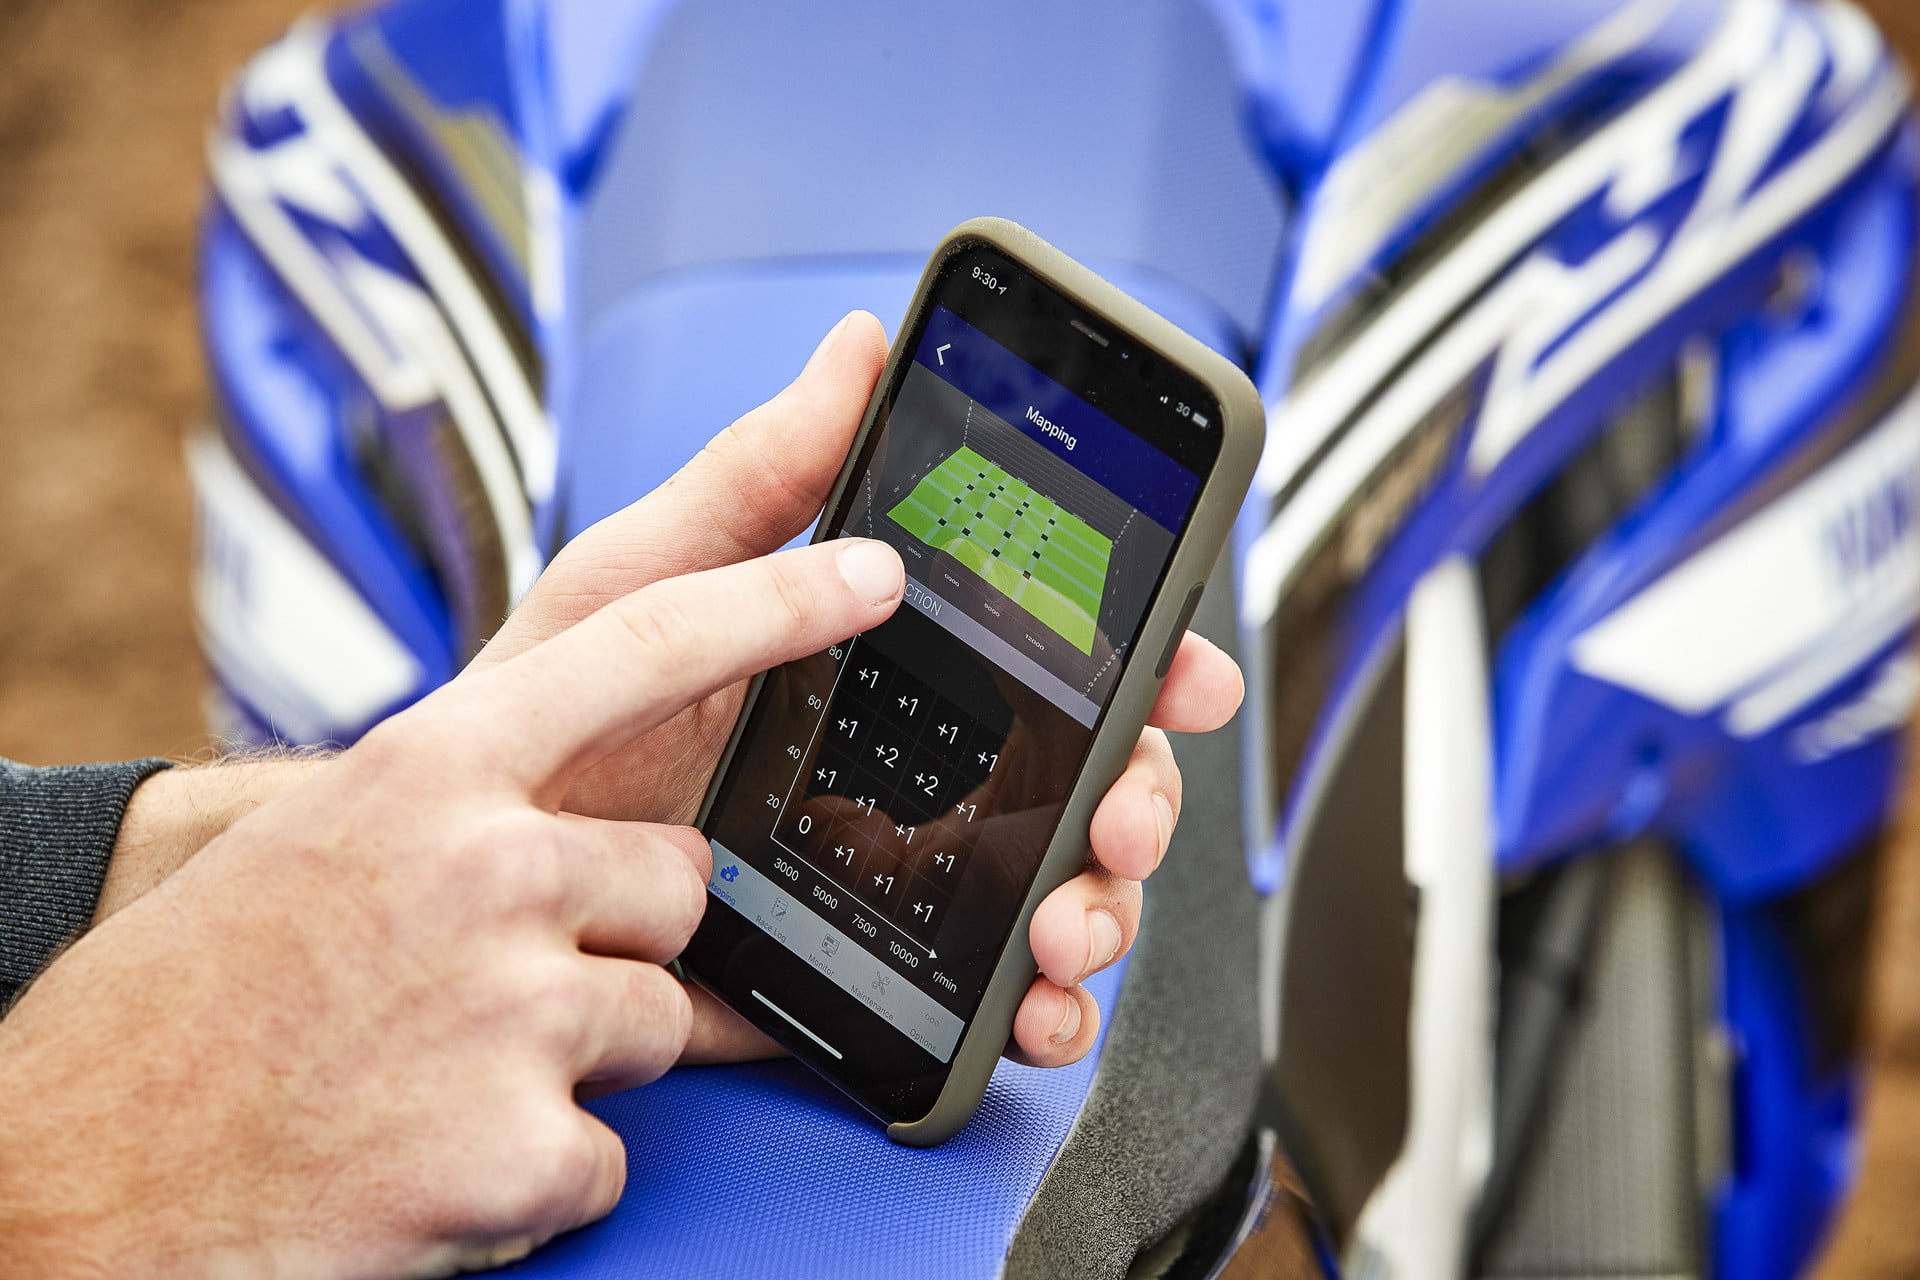 Yamaha's Power Tuner App Lets You Tune Your Motorcycle With